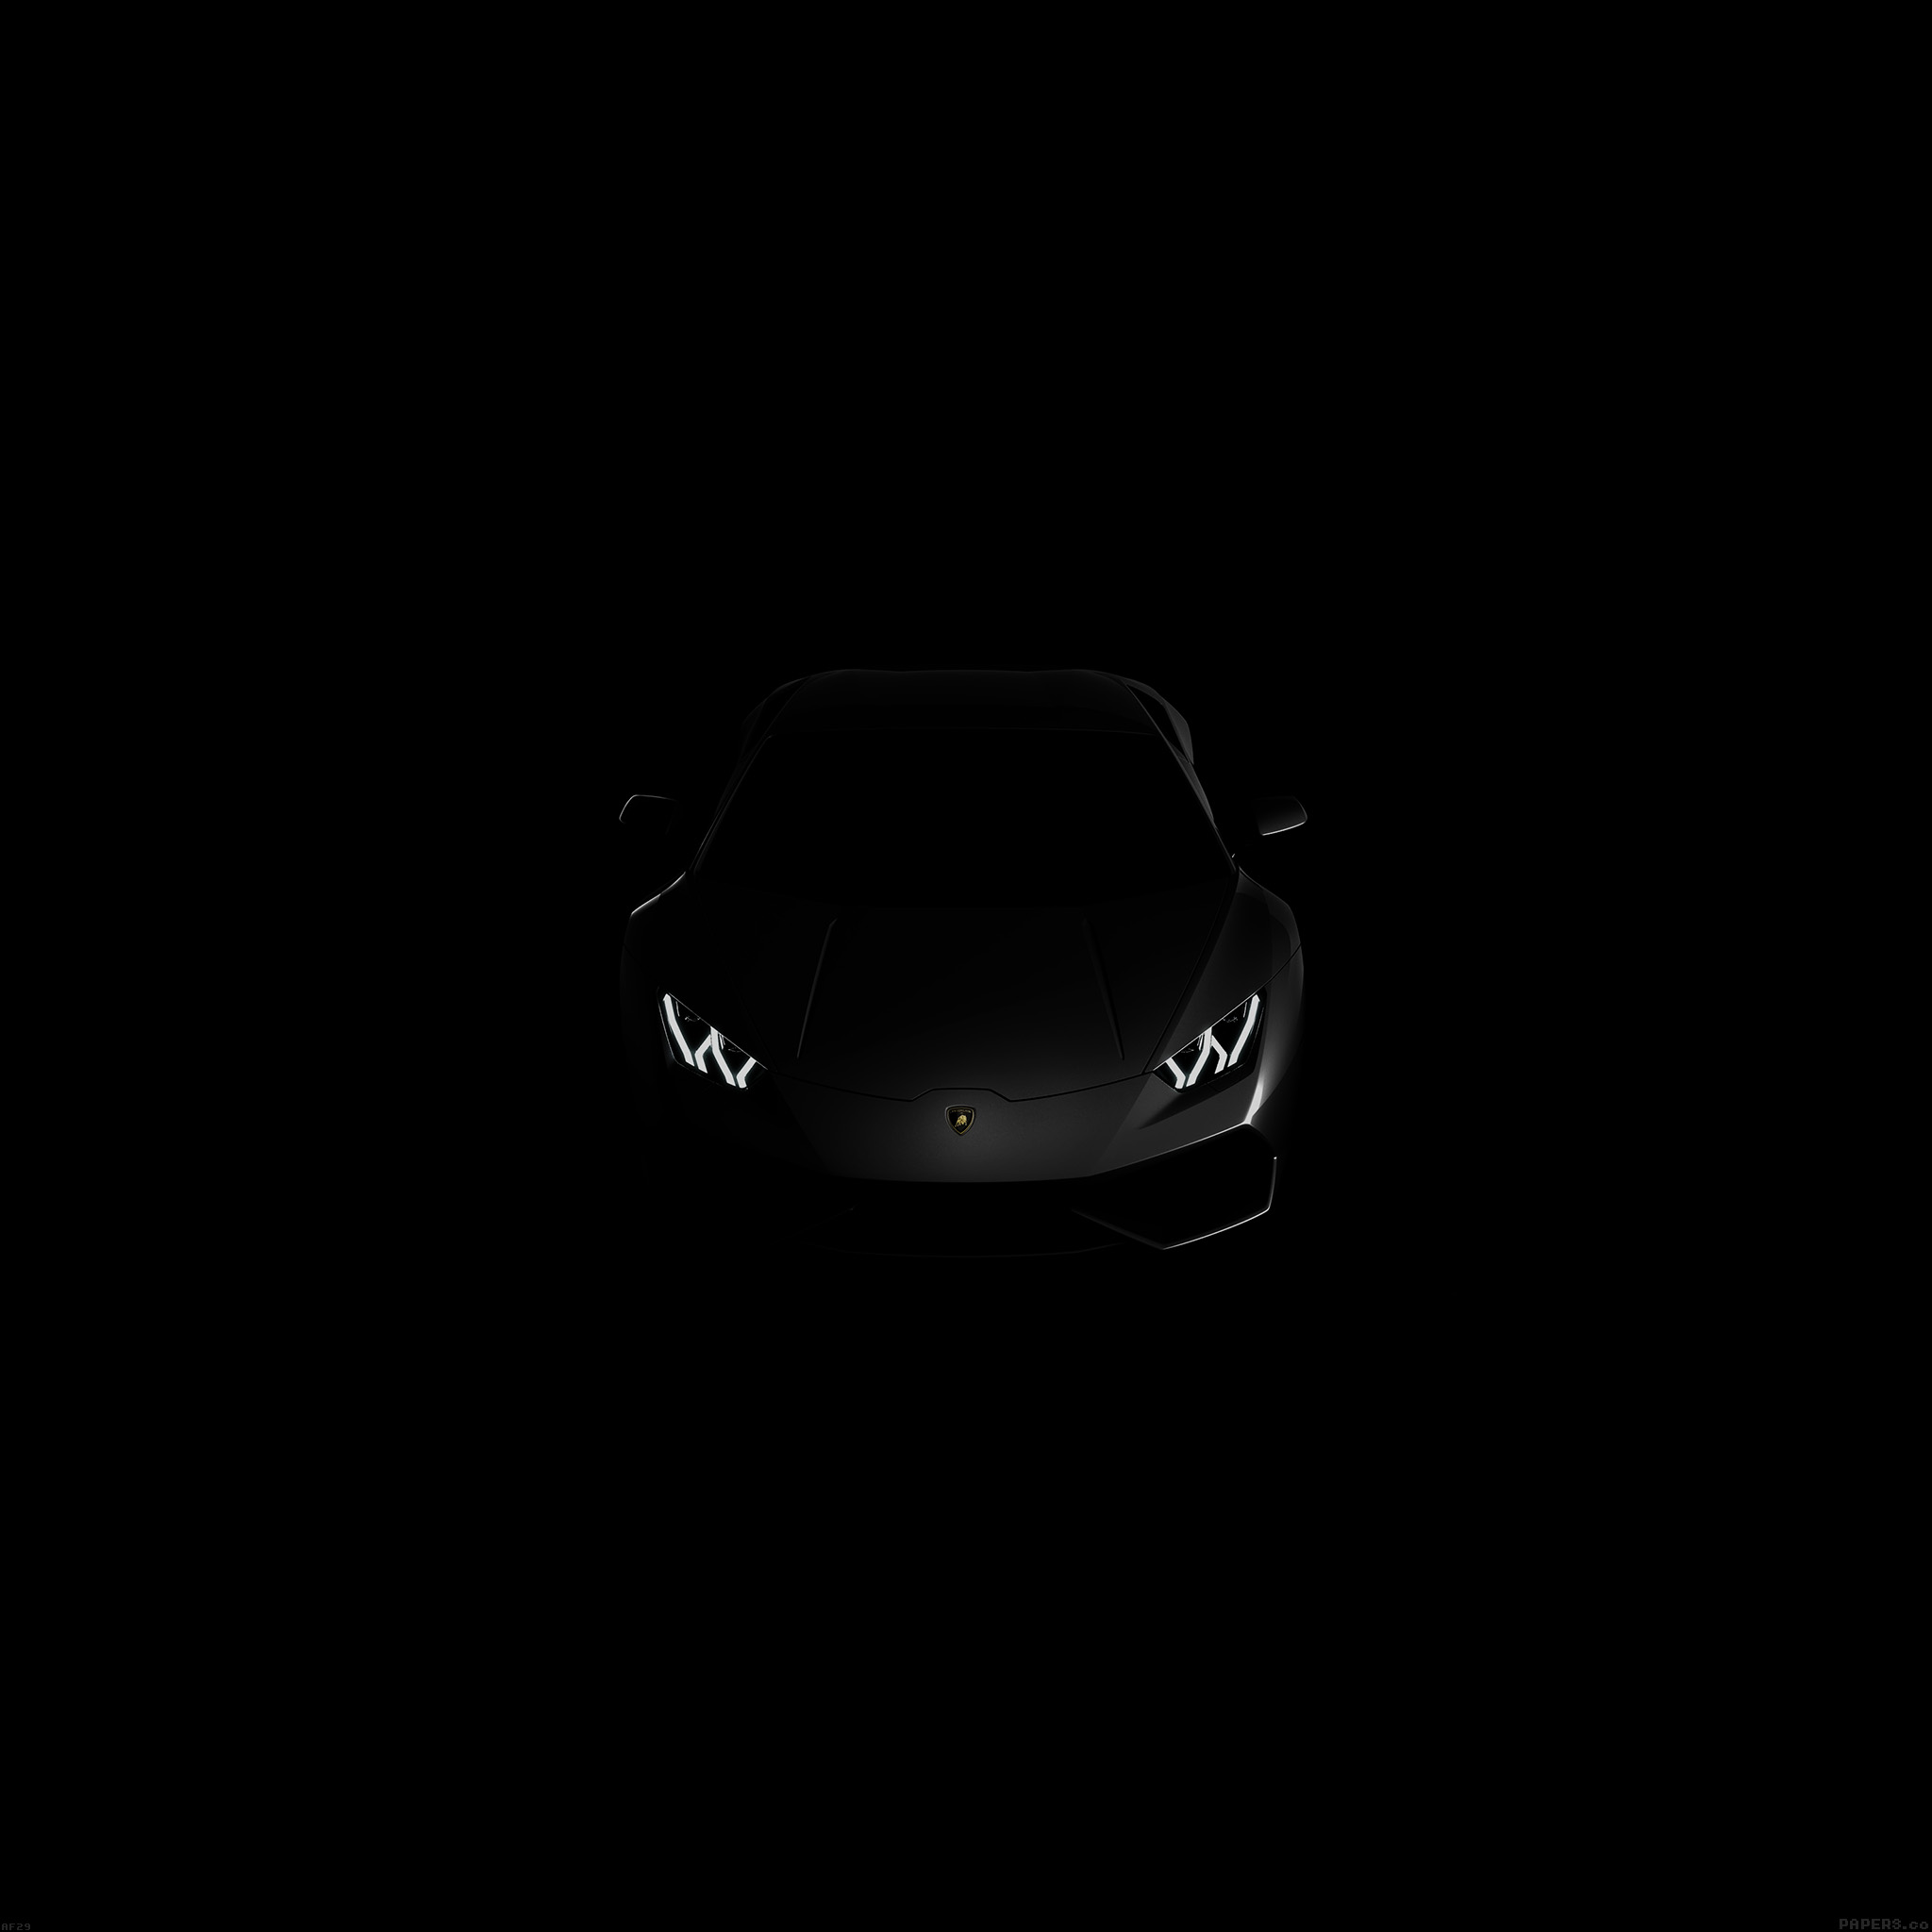 Quote Wallpaper For Sony Xperia Af29 Lamborghini Huracan Lp Black Dark Papers Co